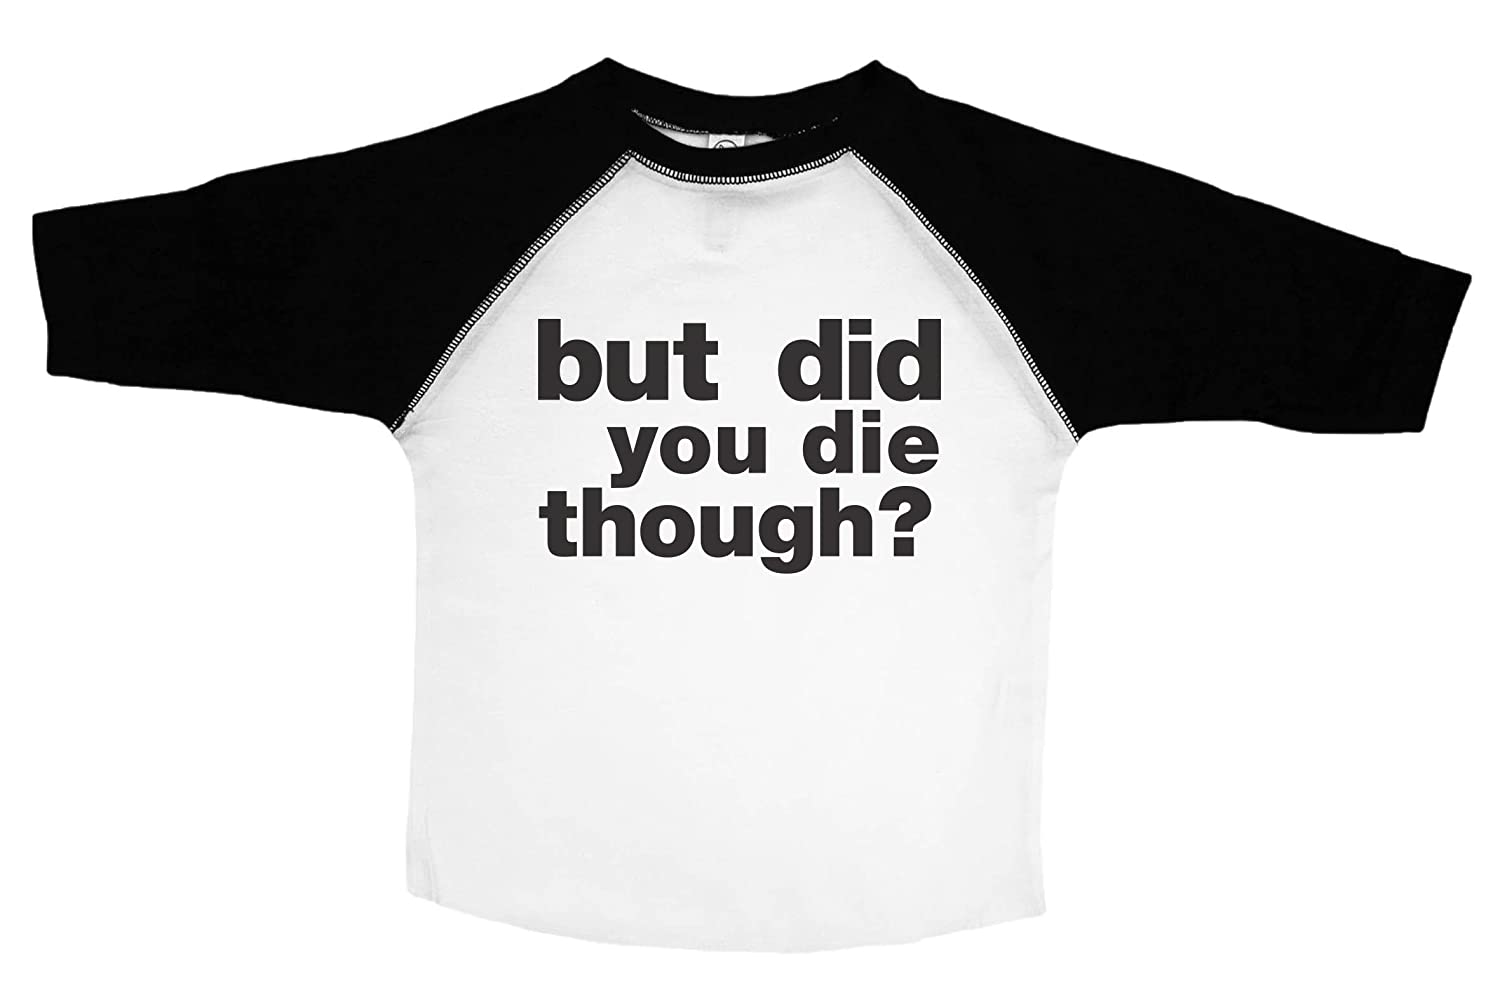 Baffle Funny Crossfit Shirt for Kids//But Did You Die Though//Toddler Shirt